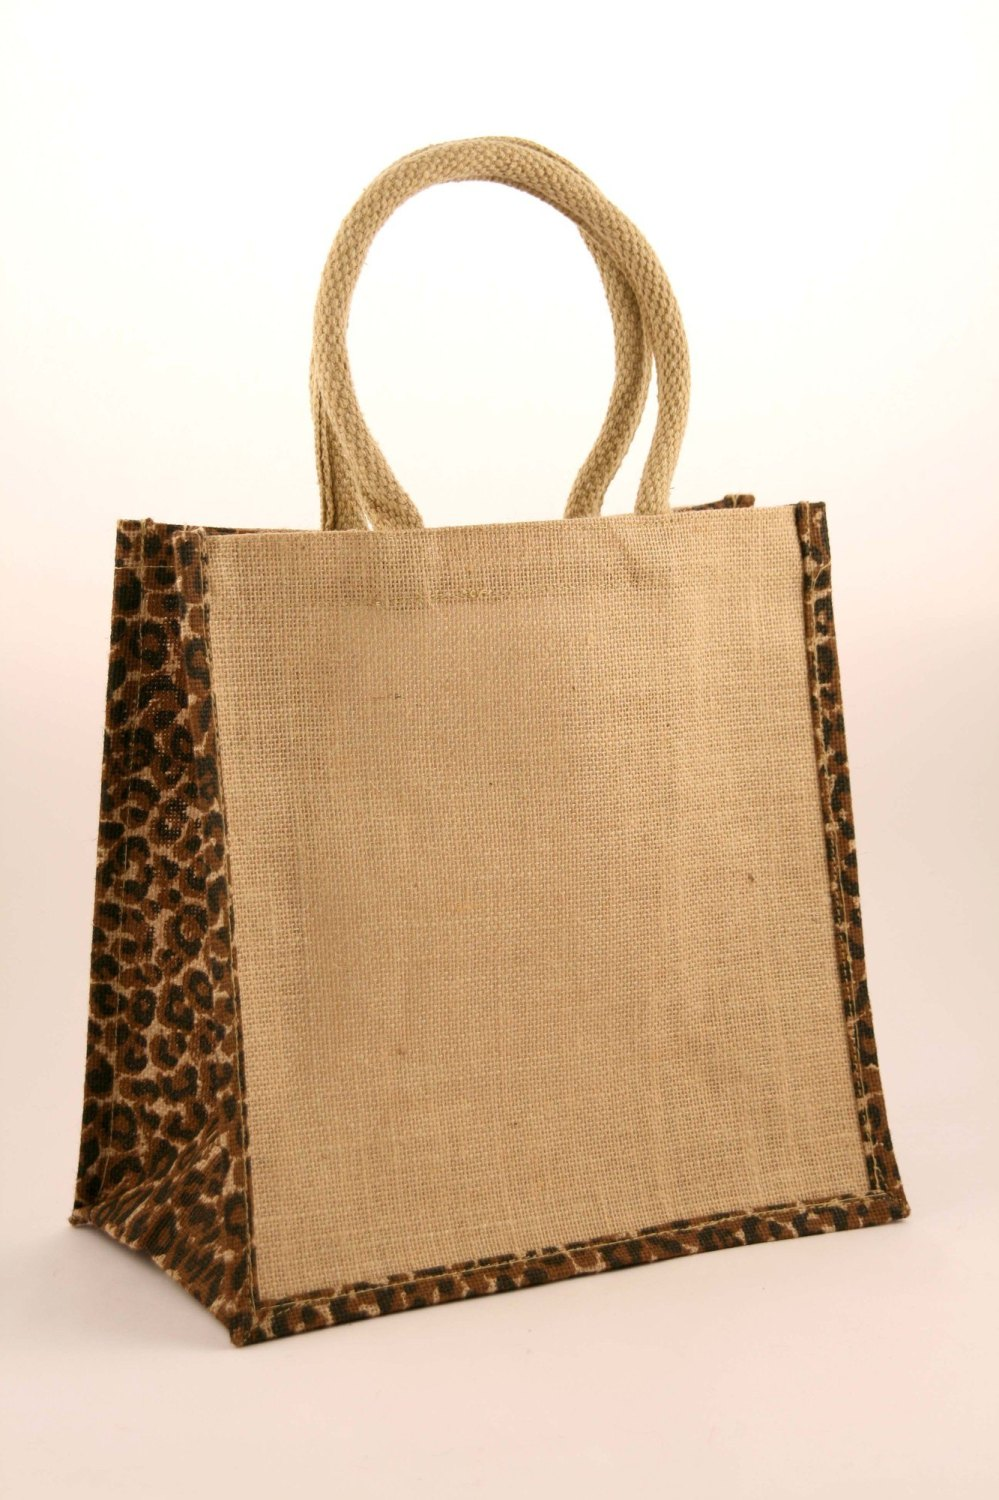 5 x Animal Print Medium Natural Jute Shopping Bag 30 x 30 cm